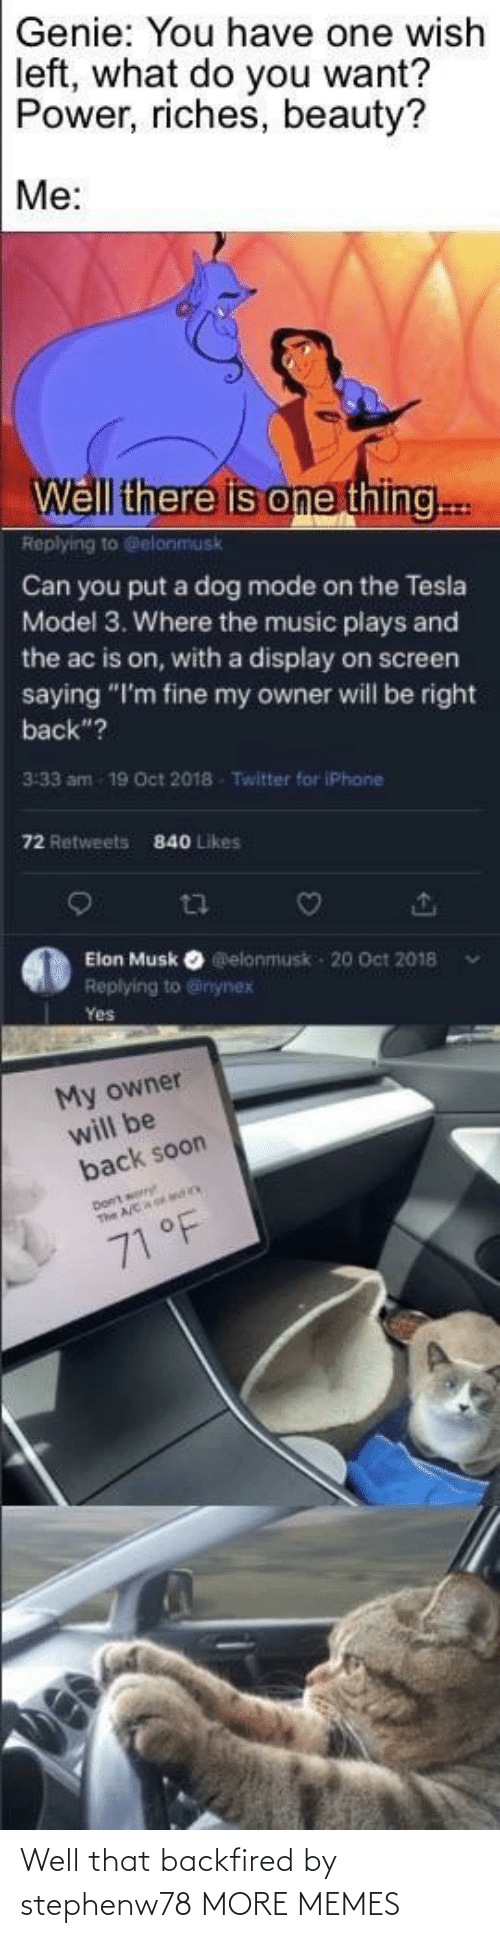 "likes: Genie: You have one wish  left, what do you want?  Power, riches, beauty?  Me:  Well there is one thing..  Replying to Gelonmusk  Can you put a dog mode on the Tesla  Model 3. Where the music plays and  the ac is on, with a display on screen  saying ""I'm fine my owner will be right  back""?  3:33 am  19 Oct 2018  Twitter for iPhane  72 Retweets  840 Likes  Elon Musk O elonmusk - 20 Oct 2018  Replying to @inynex  Yes  My owner  will be  back soon  71 °F Well that backfired by stephenw78 MORE MEMES"